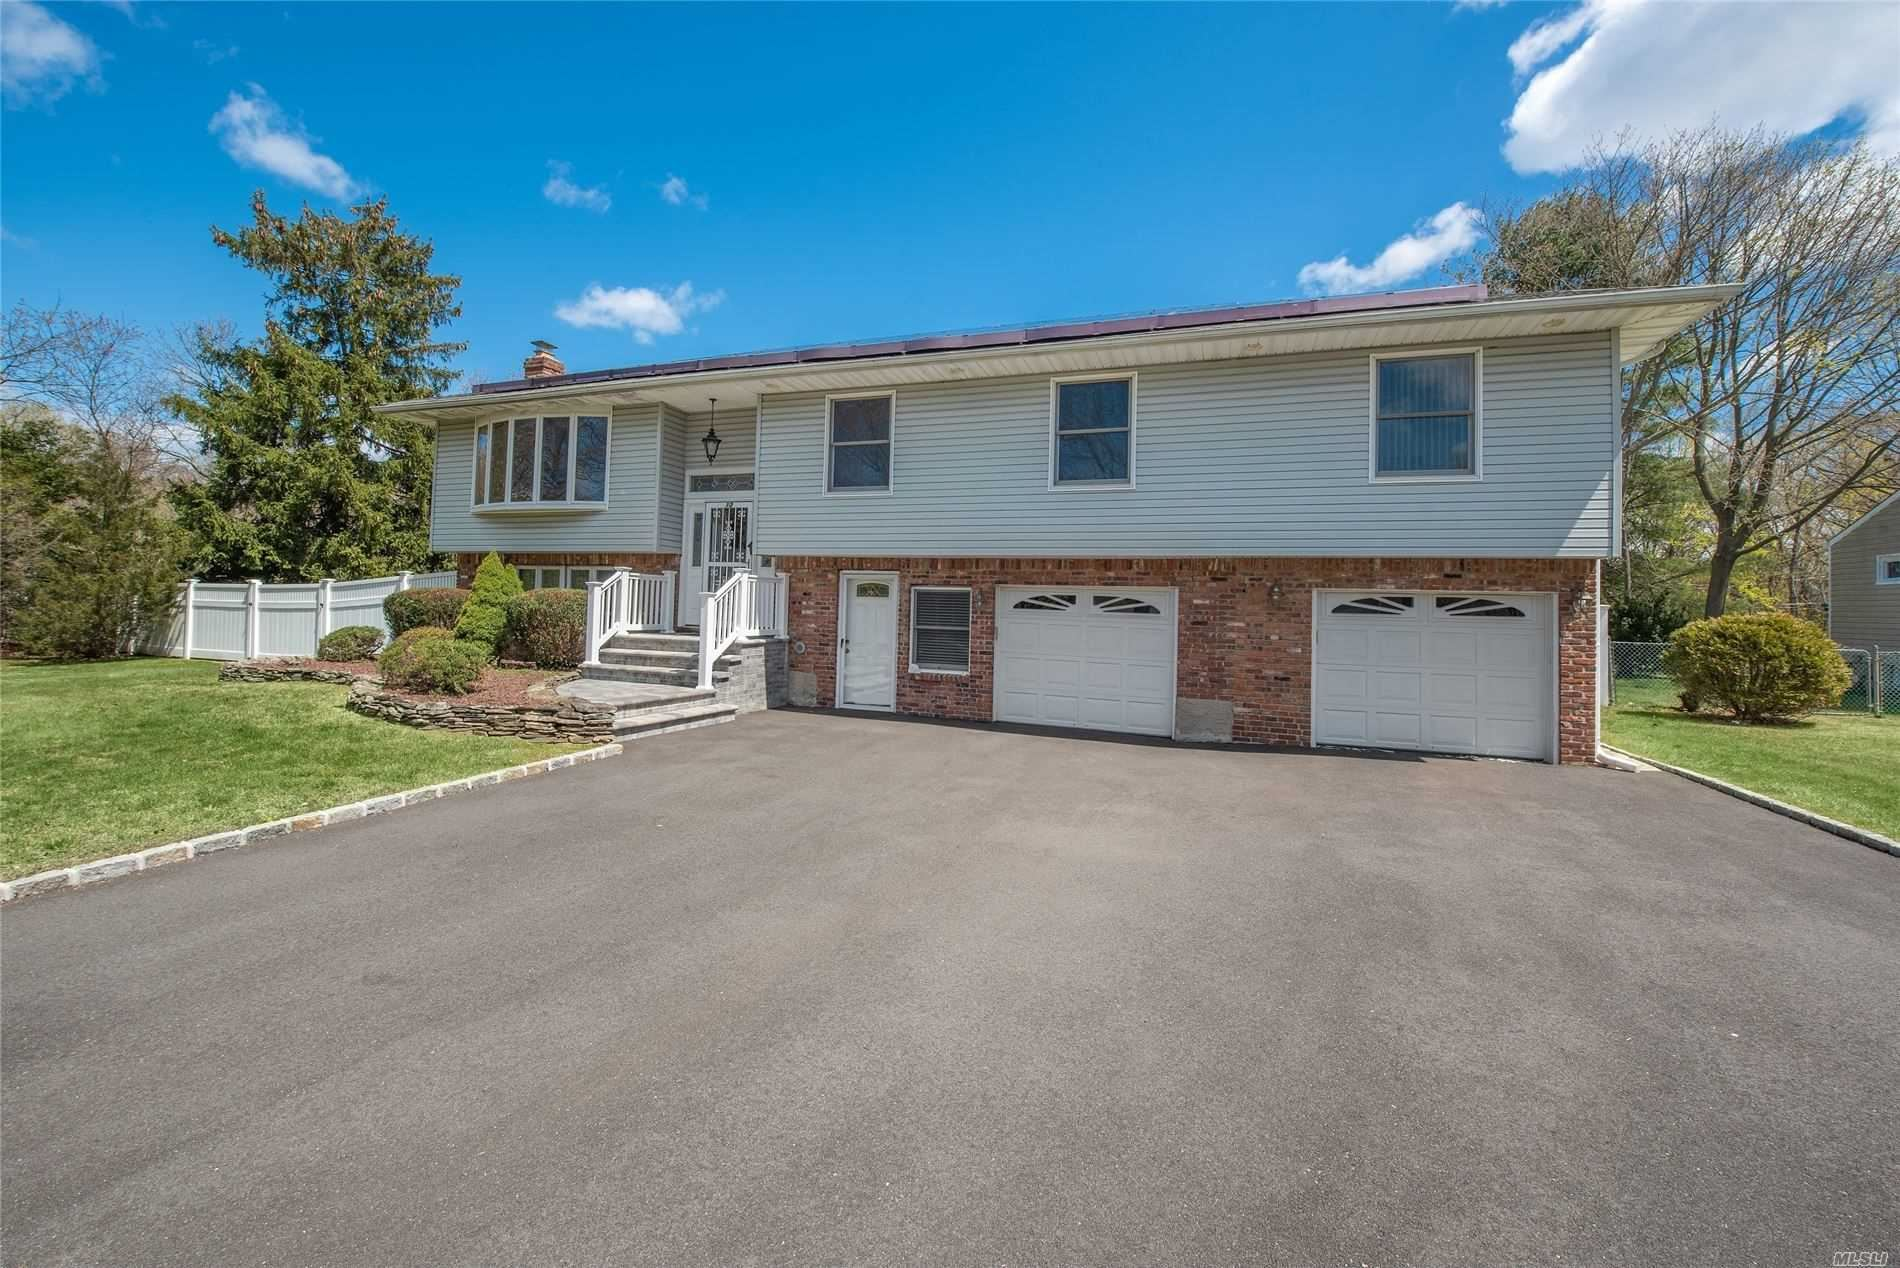 12 Eastover Drive, East Northport, NY 11731 - MLS#: 3212439